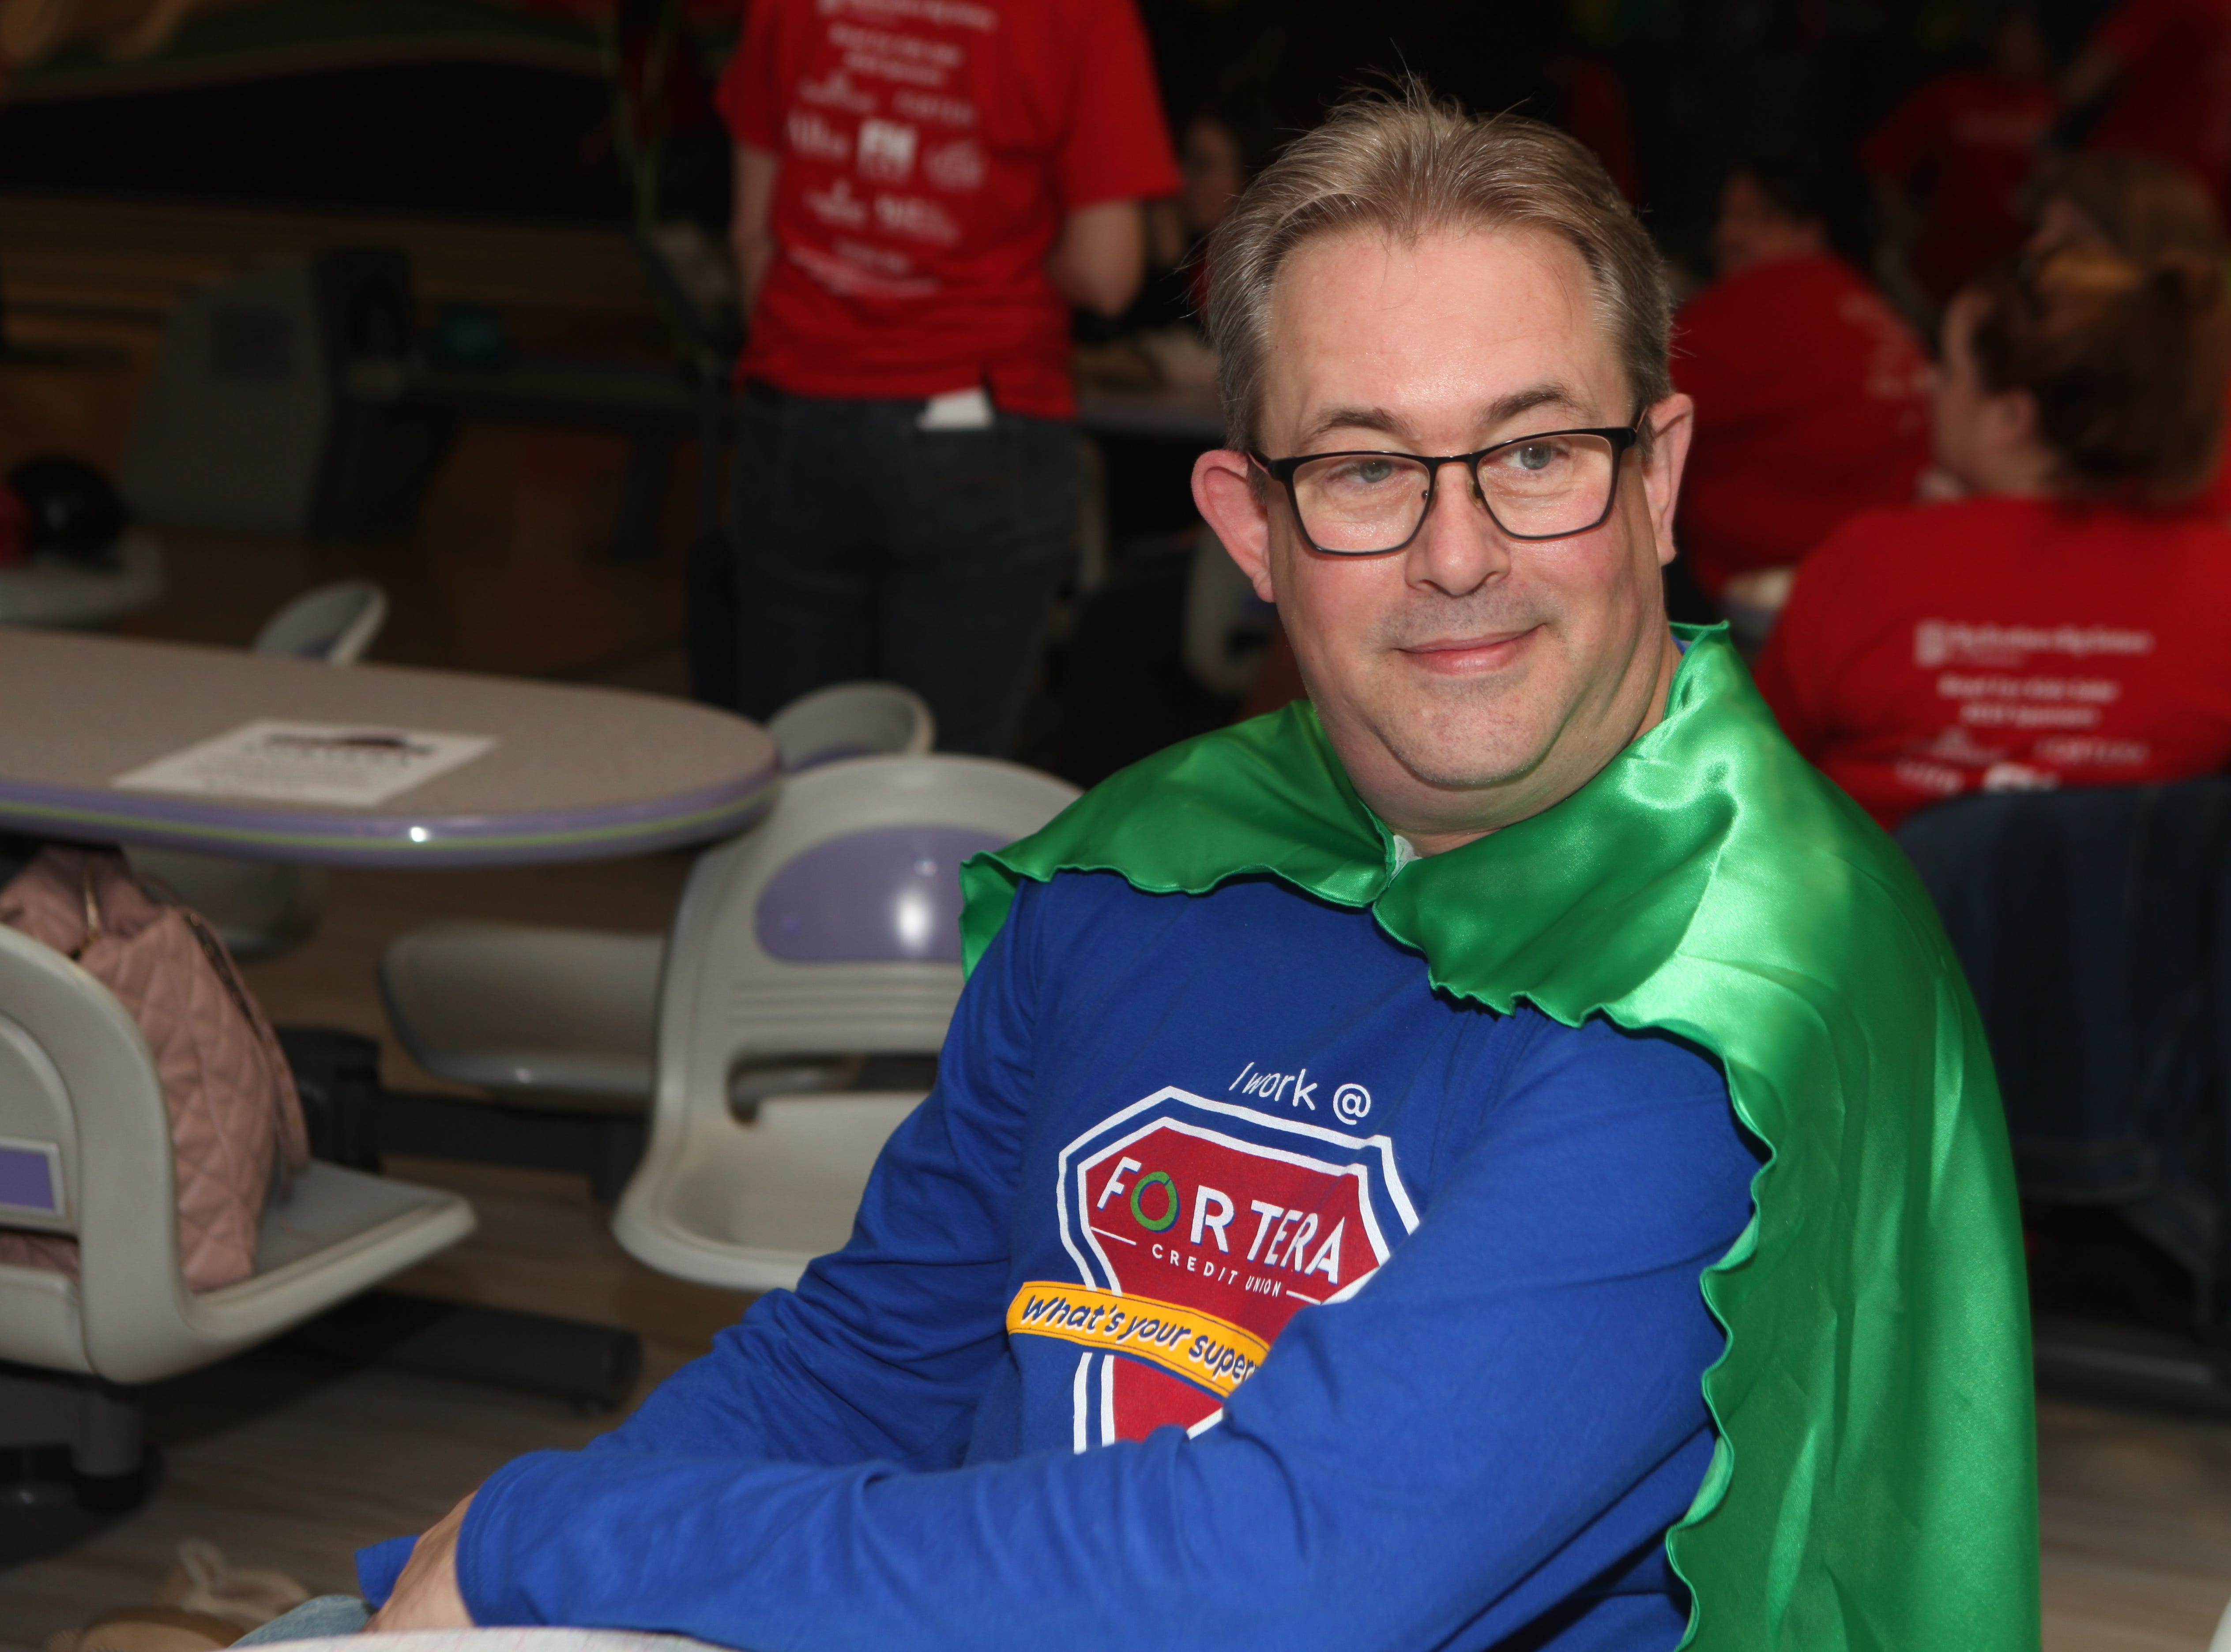 Fortera's Brad Reuvers bowled like a superhero at the Big Brothers Big Sisters 2019 Bankers Challenge at the Pinnacle Family Entertainment Center on Tuesday, March 12, 2019.